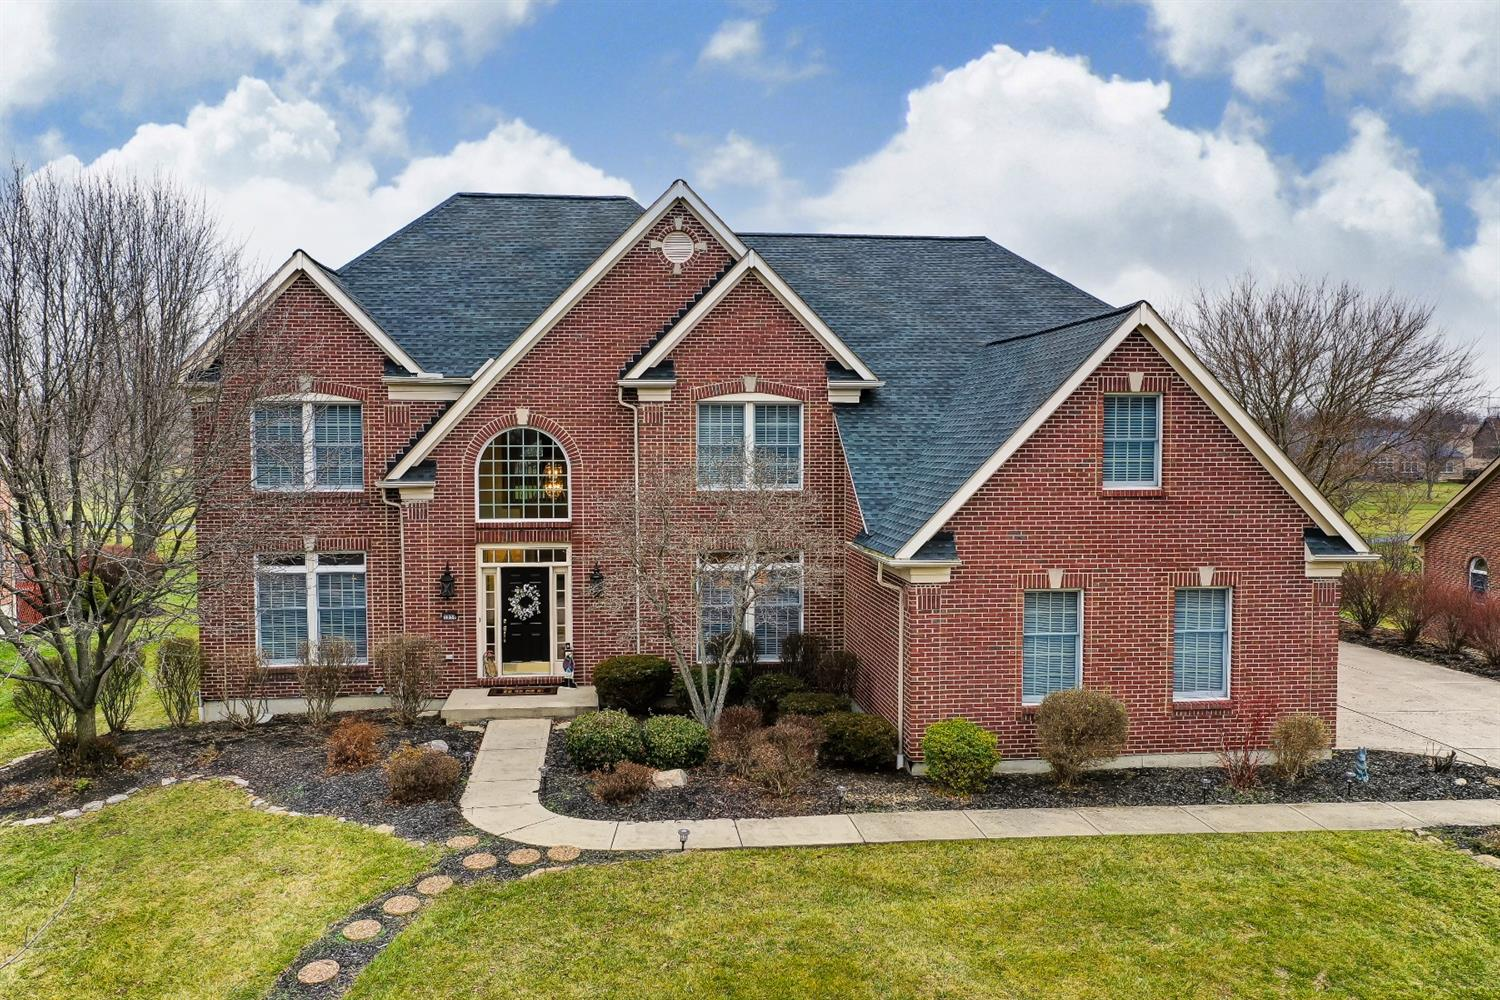 3936 St Andrews Court, Mason, OH 45040